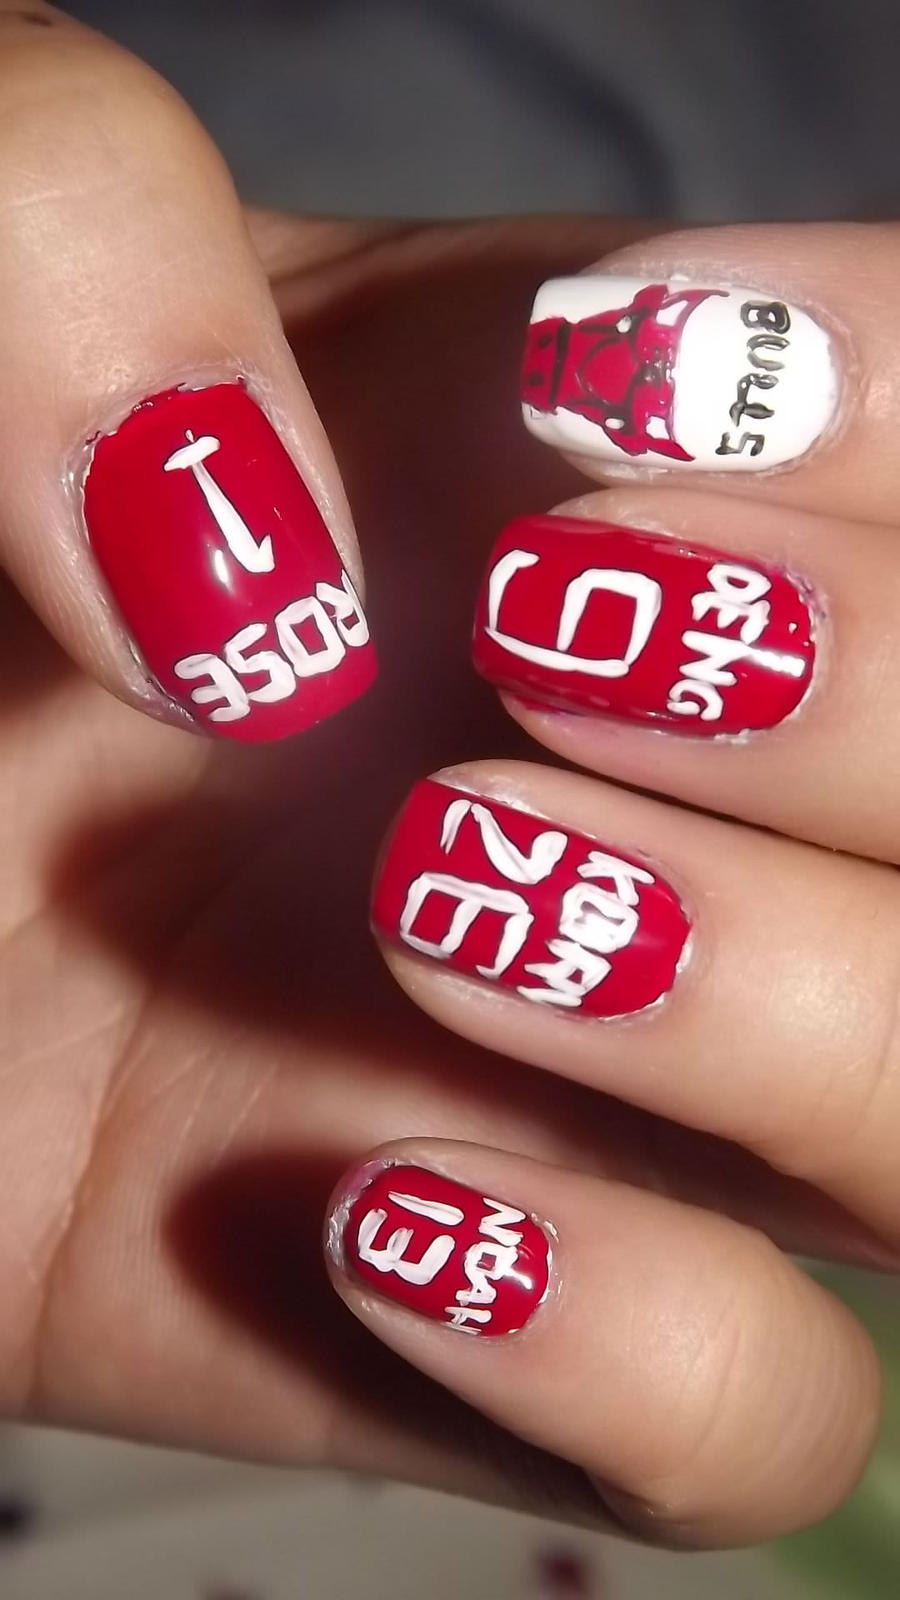 Chicago Bulls Nails by xsheervanilla on DeviantArt